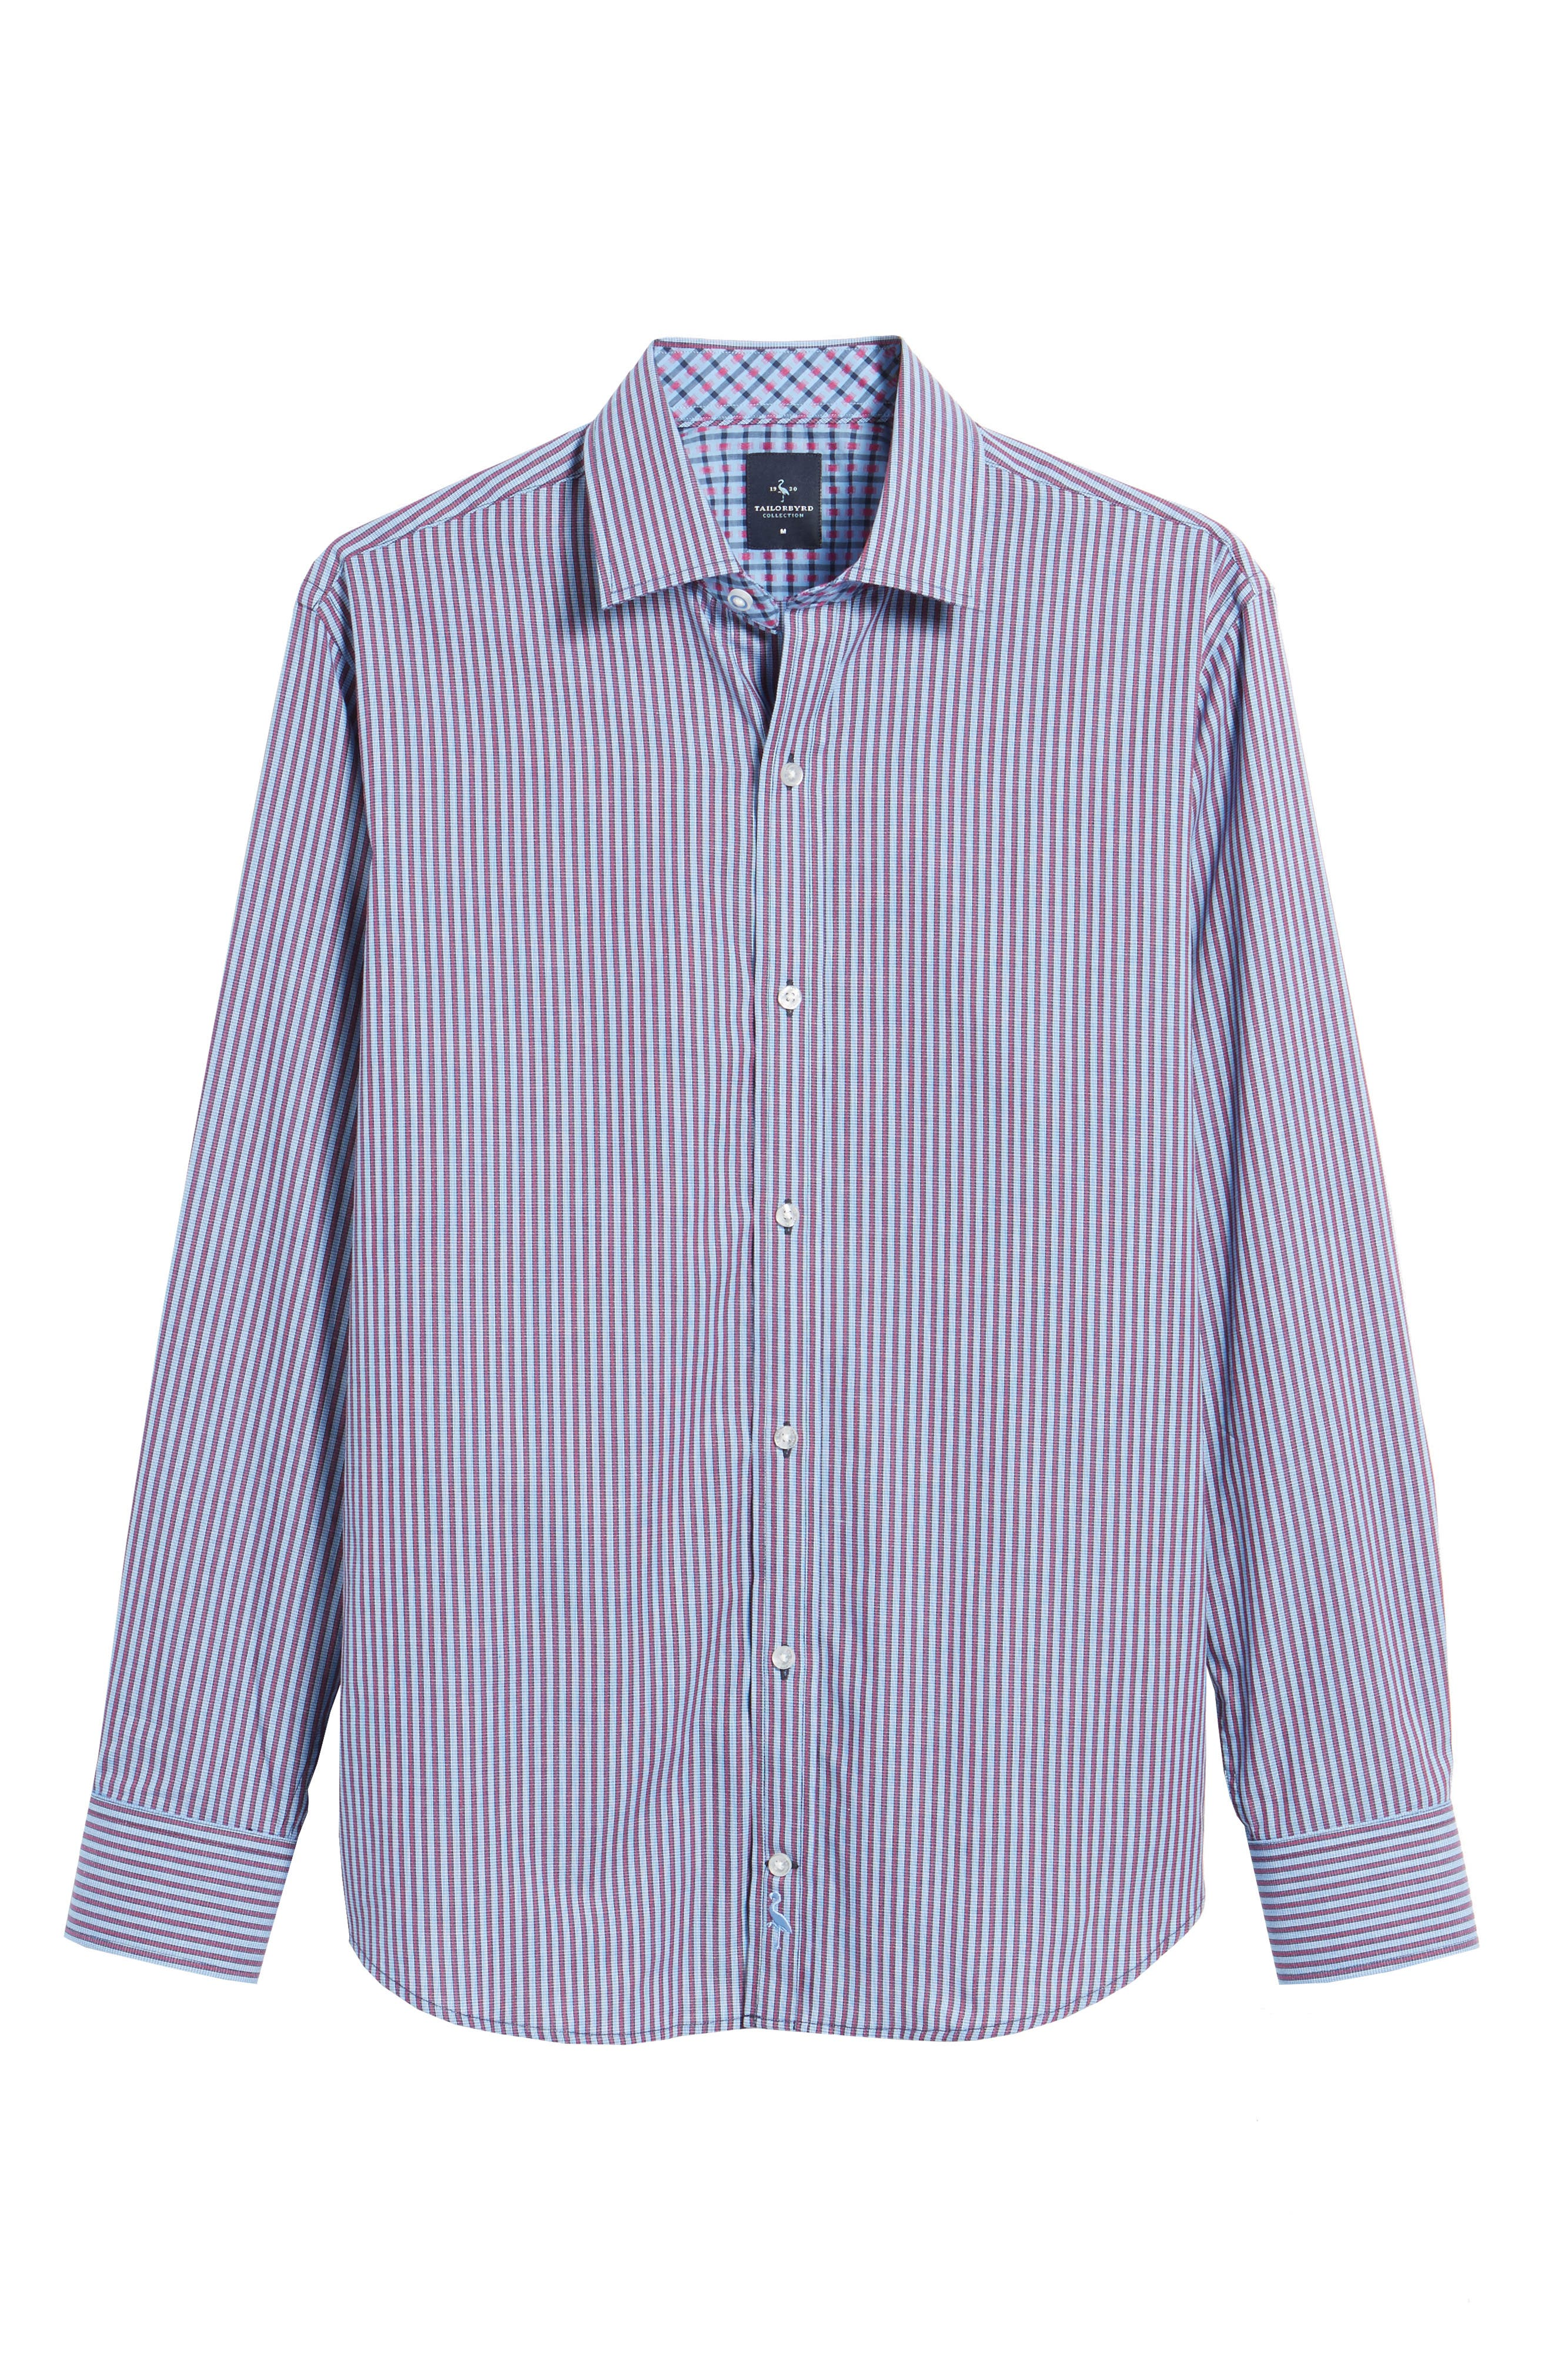 Brownfields Striped Sport Shirt,                             Alternate thumbnail 6, color,                             617